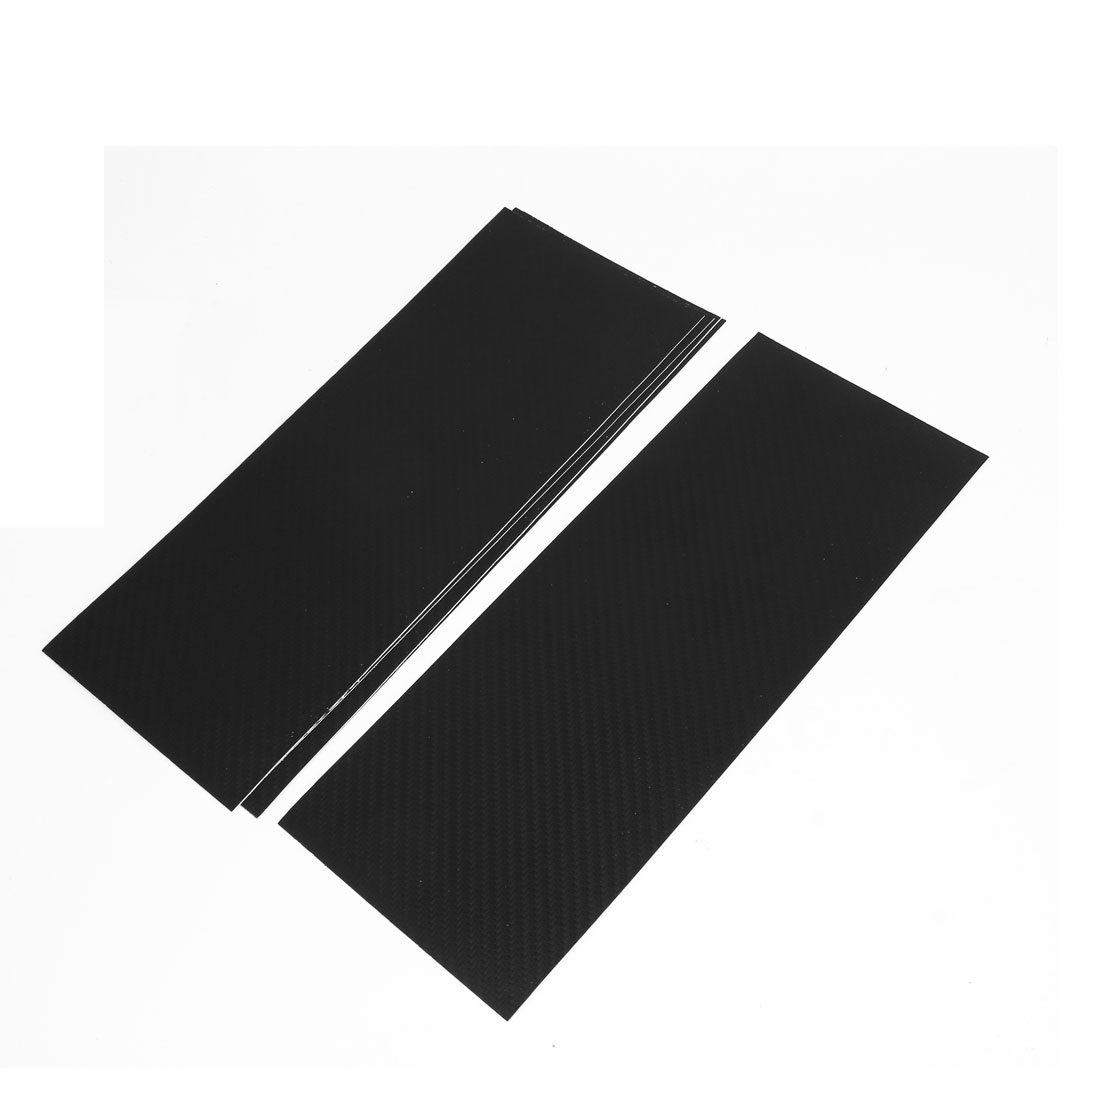 5pcs 300 x 118mm Self Adhesive Carbon Fiber Print Protective Vinyl Film Sticker Black for Car